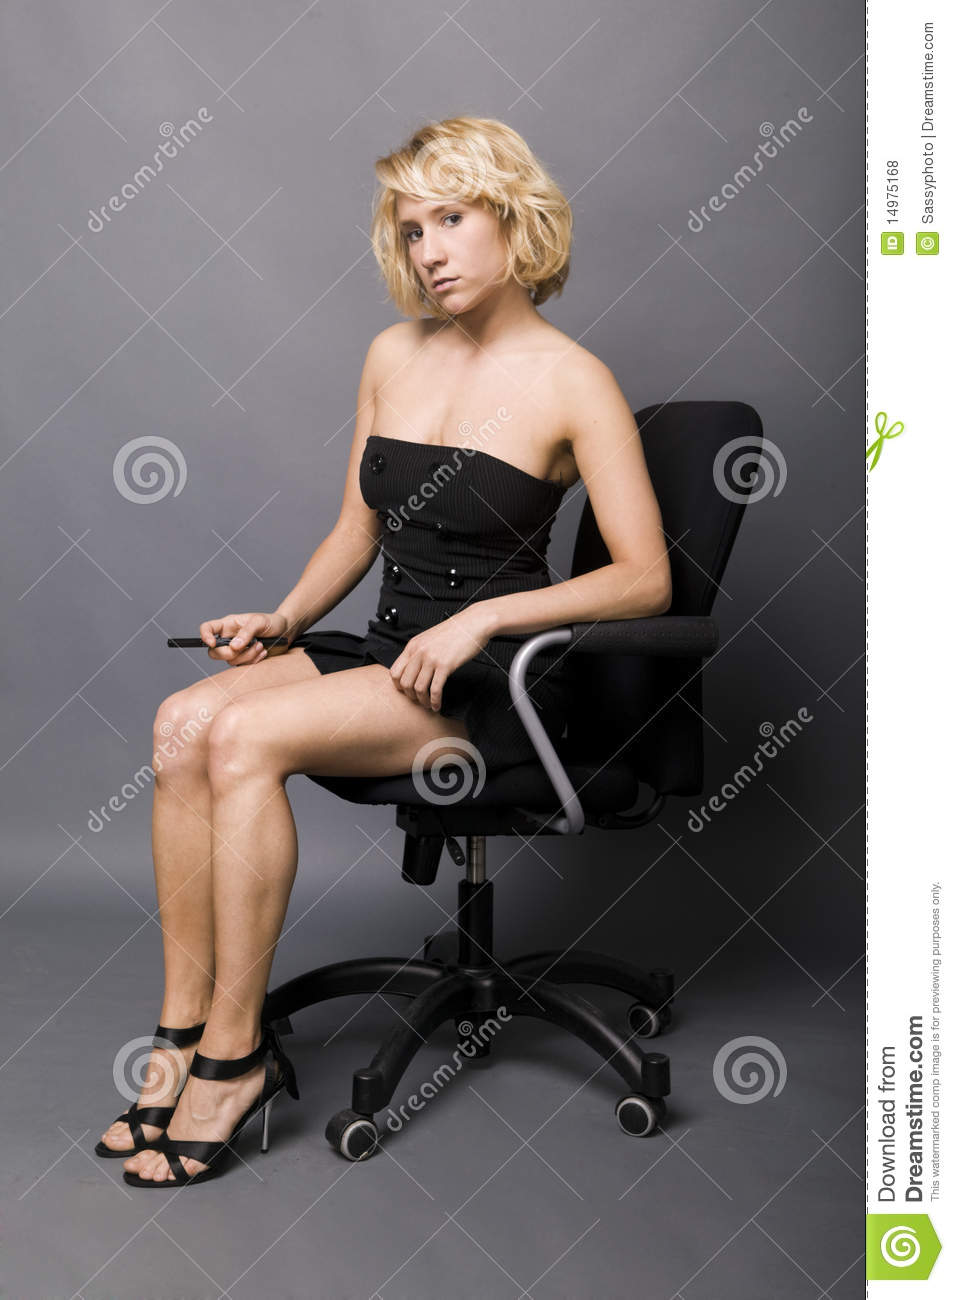 office max chair overstock dining room chairs young secretary sitting on an stock photo - image of lifestyle, happy: 14975168